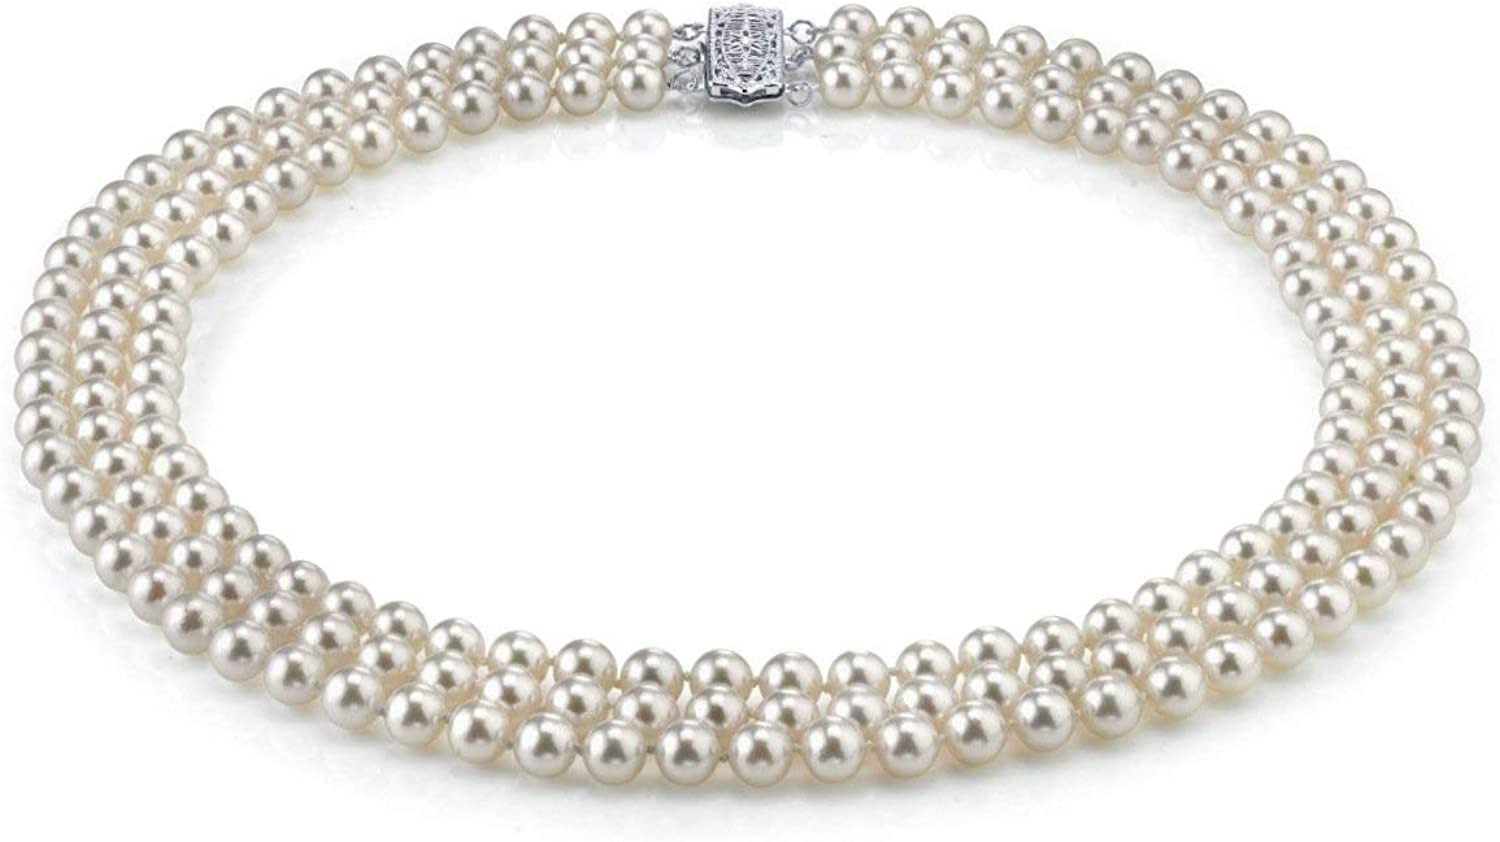 THE PEARL SOURCE 14K Gold 5-6mm AAAA Quality Triple Strand White Freshwater Cultured Pearl Necklace for Women in 16-18